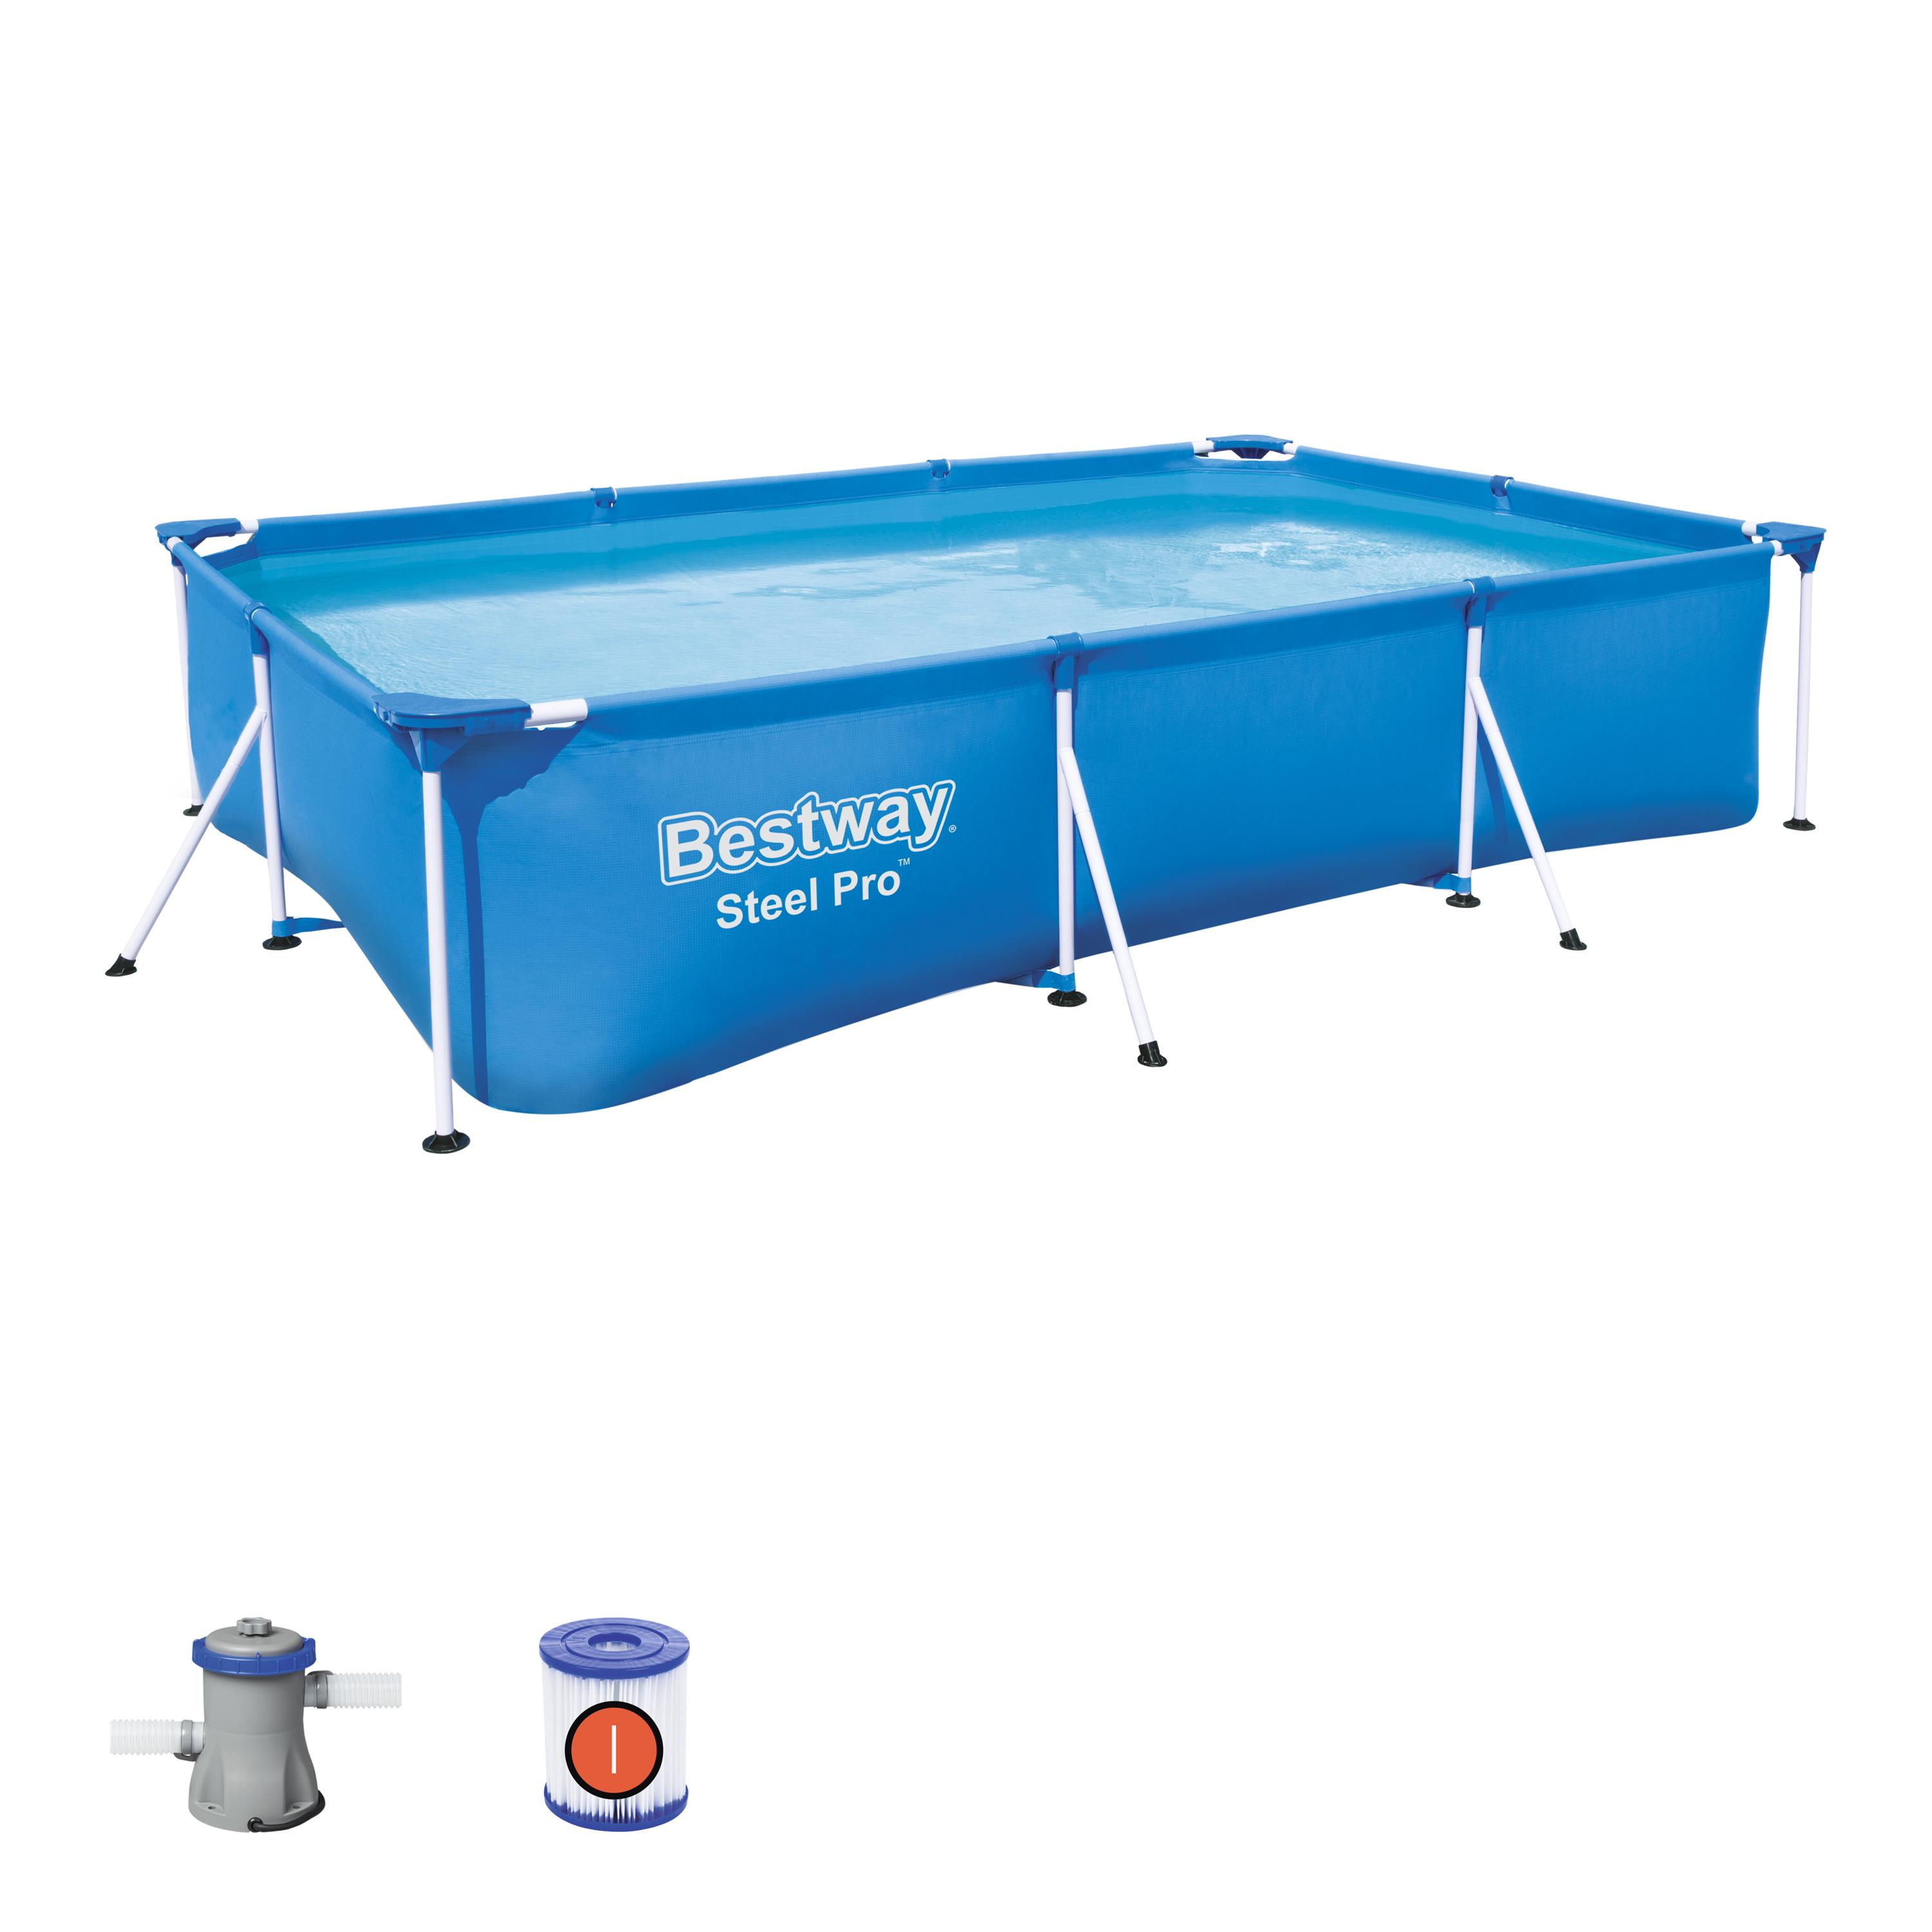 Scaffold Rectangular Pool 300 х201х66 Cm, 3300 L, With Filter, Steel Pro Bestway, Item No. 56411